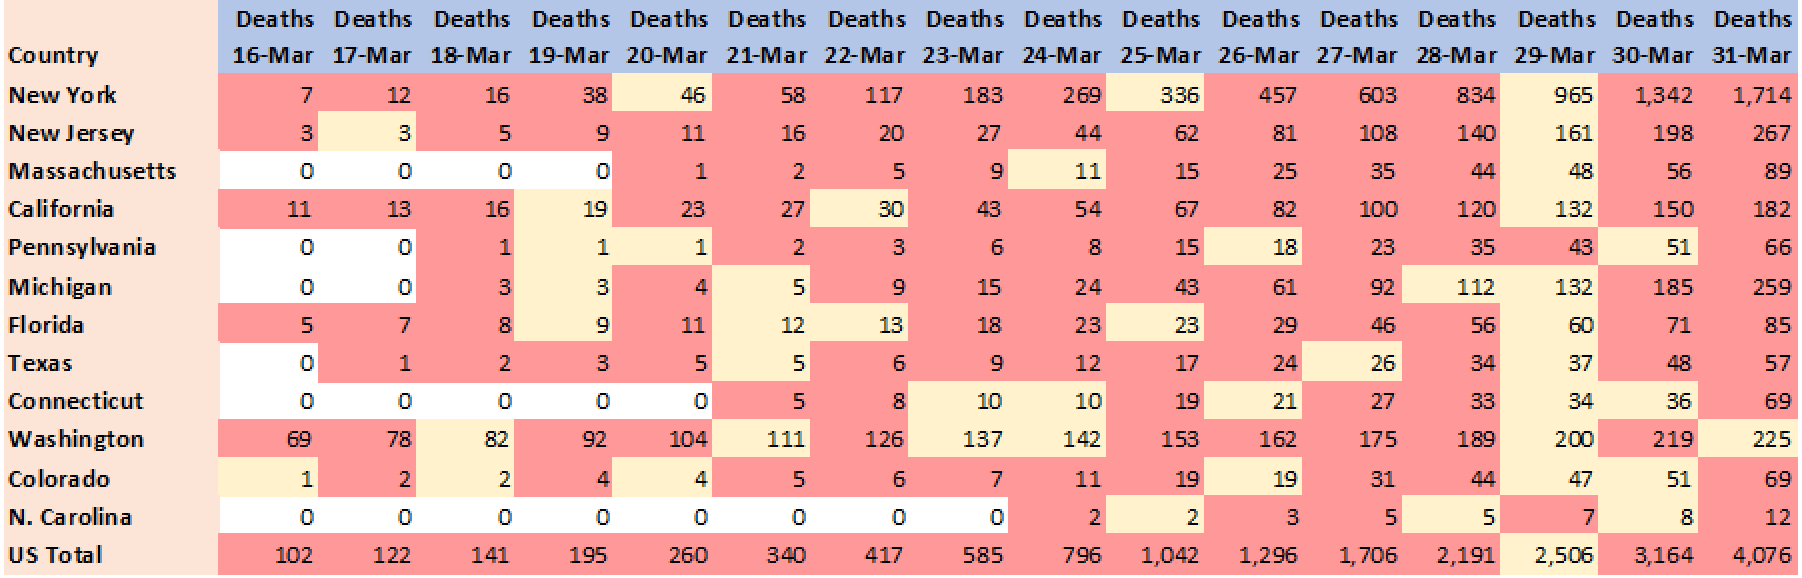 Outcome of death, period 16-Mar-2020 to 31-Mar-2020